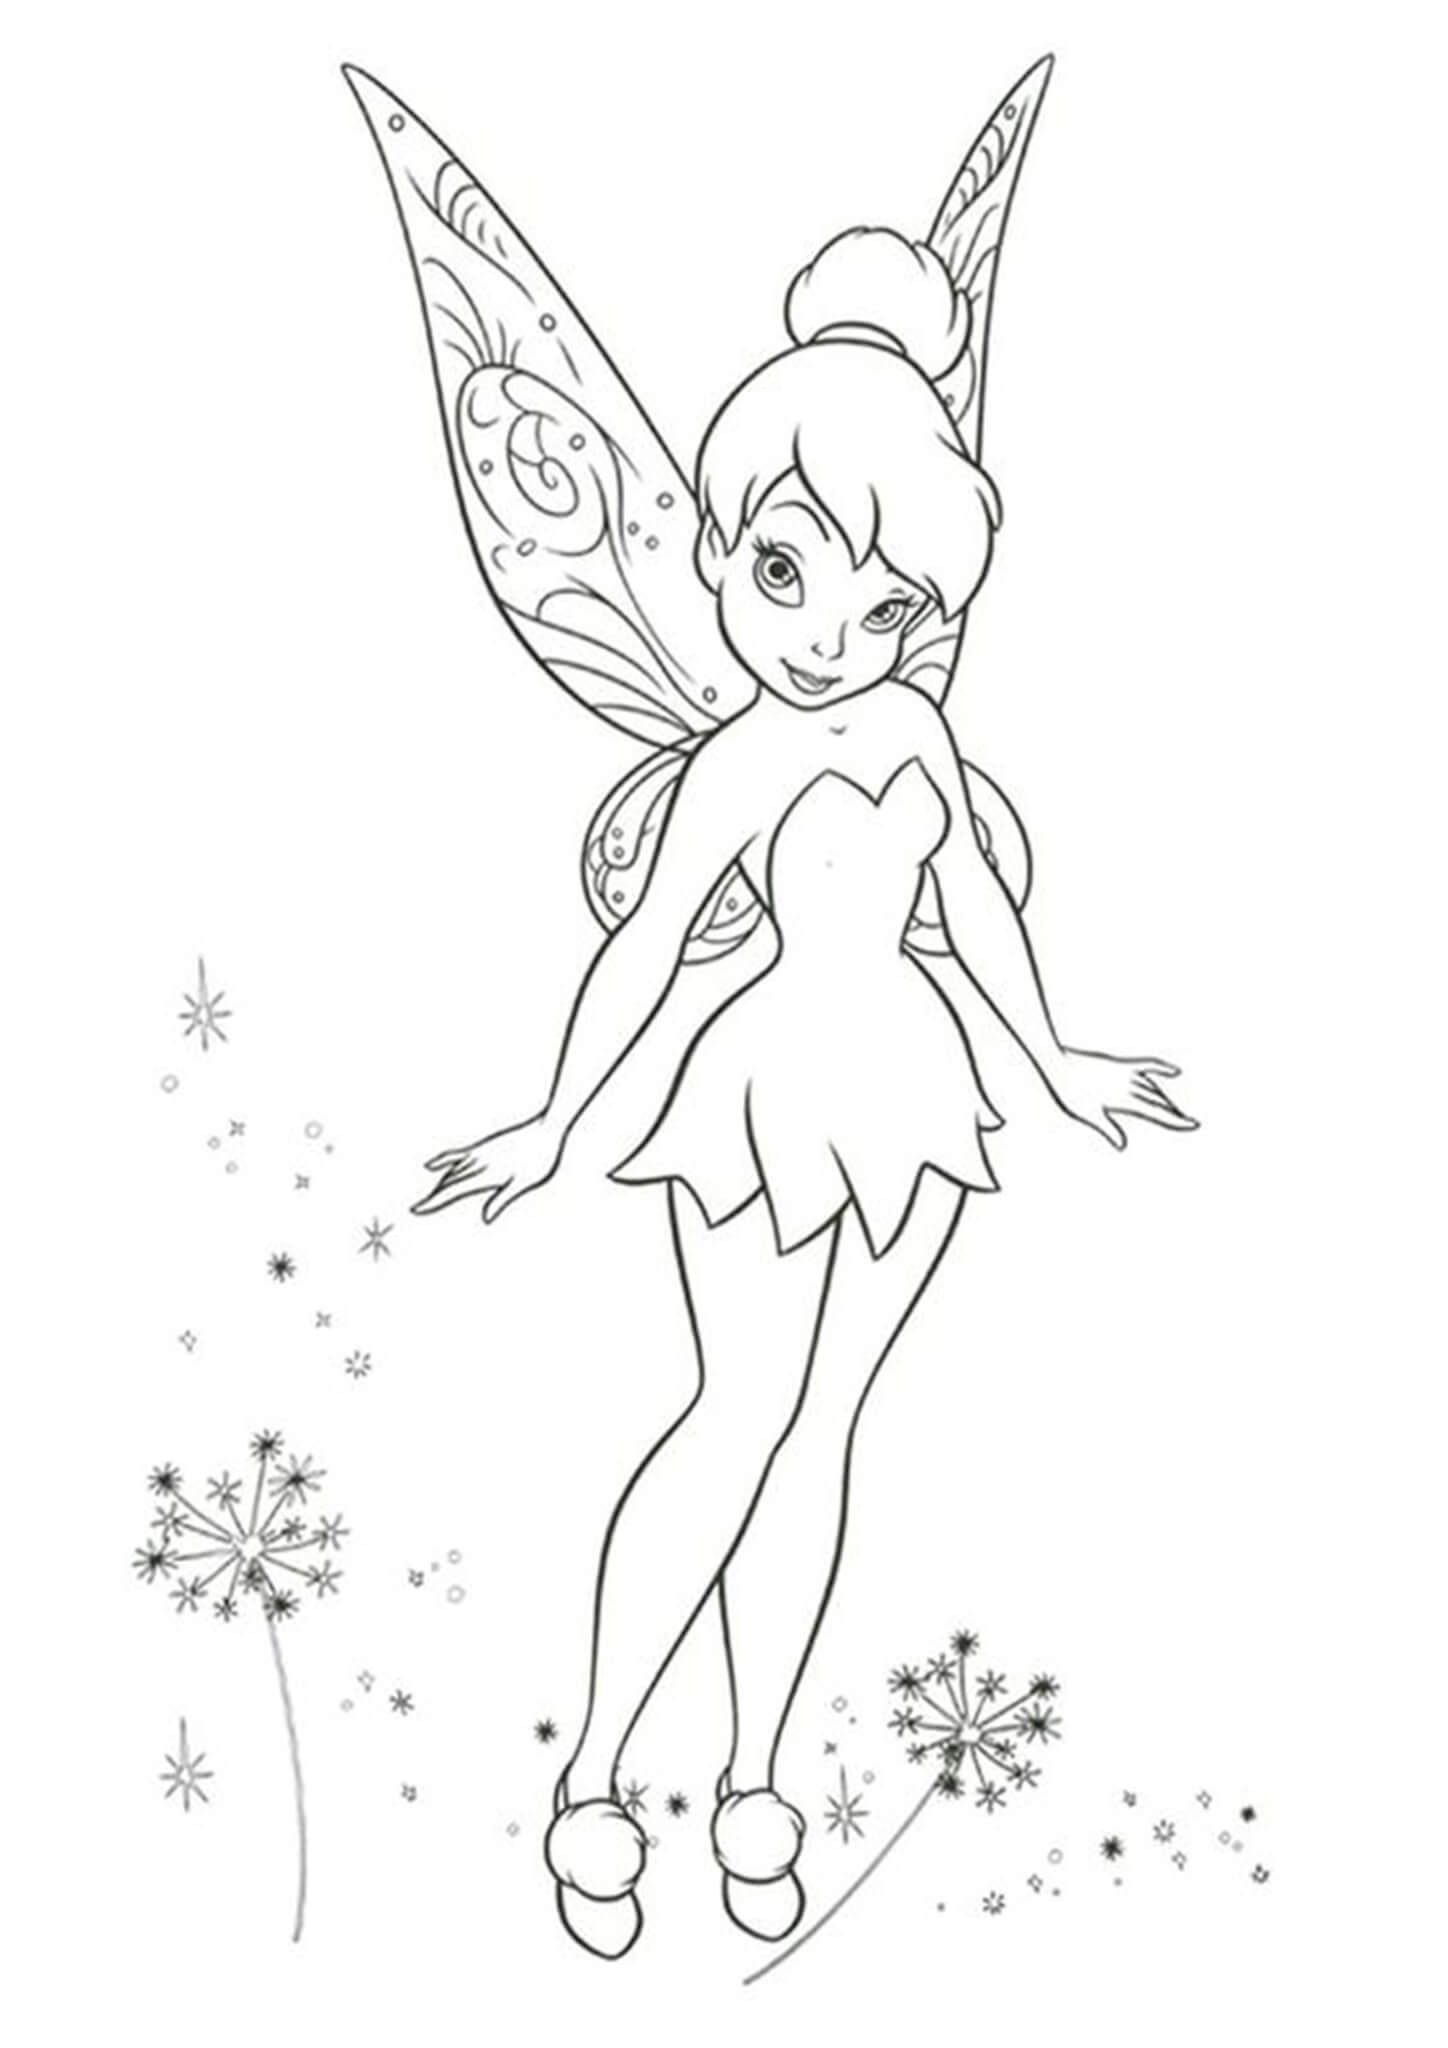 Free Easy To Print Tinkerbell Coloring Pages Tinkerbell Coloring Pages Friends Coloring Pages Tinkerbell And Friends